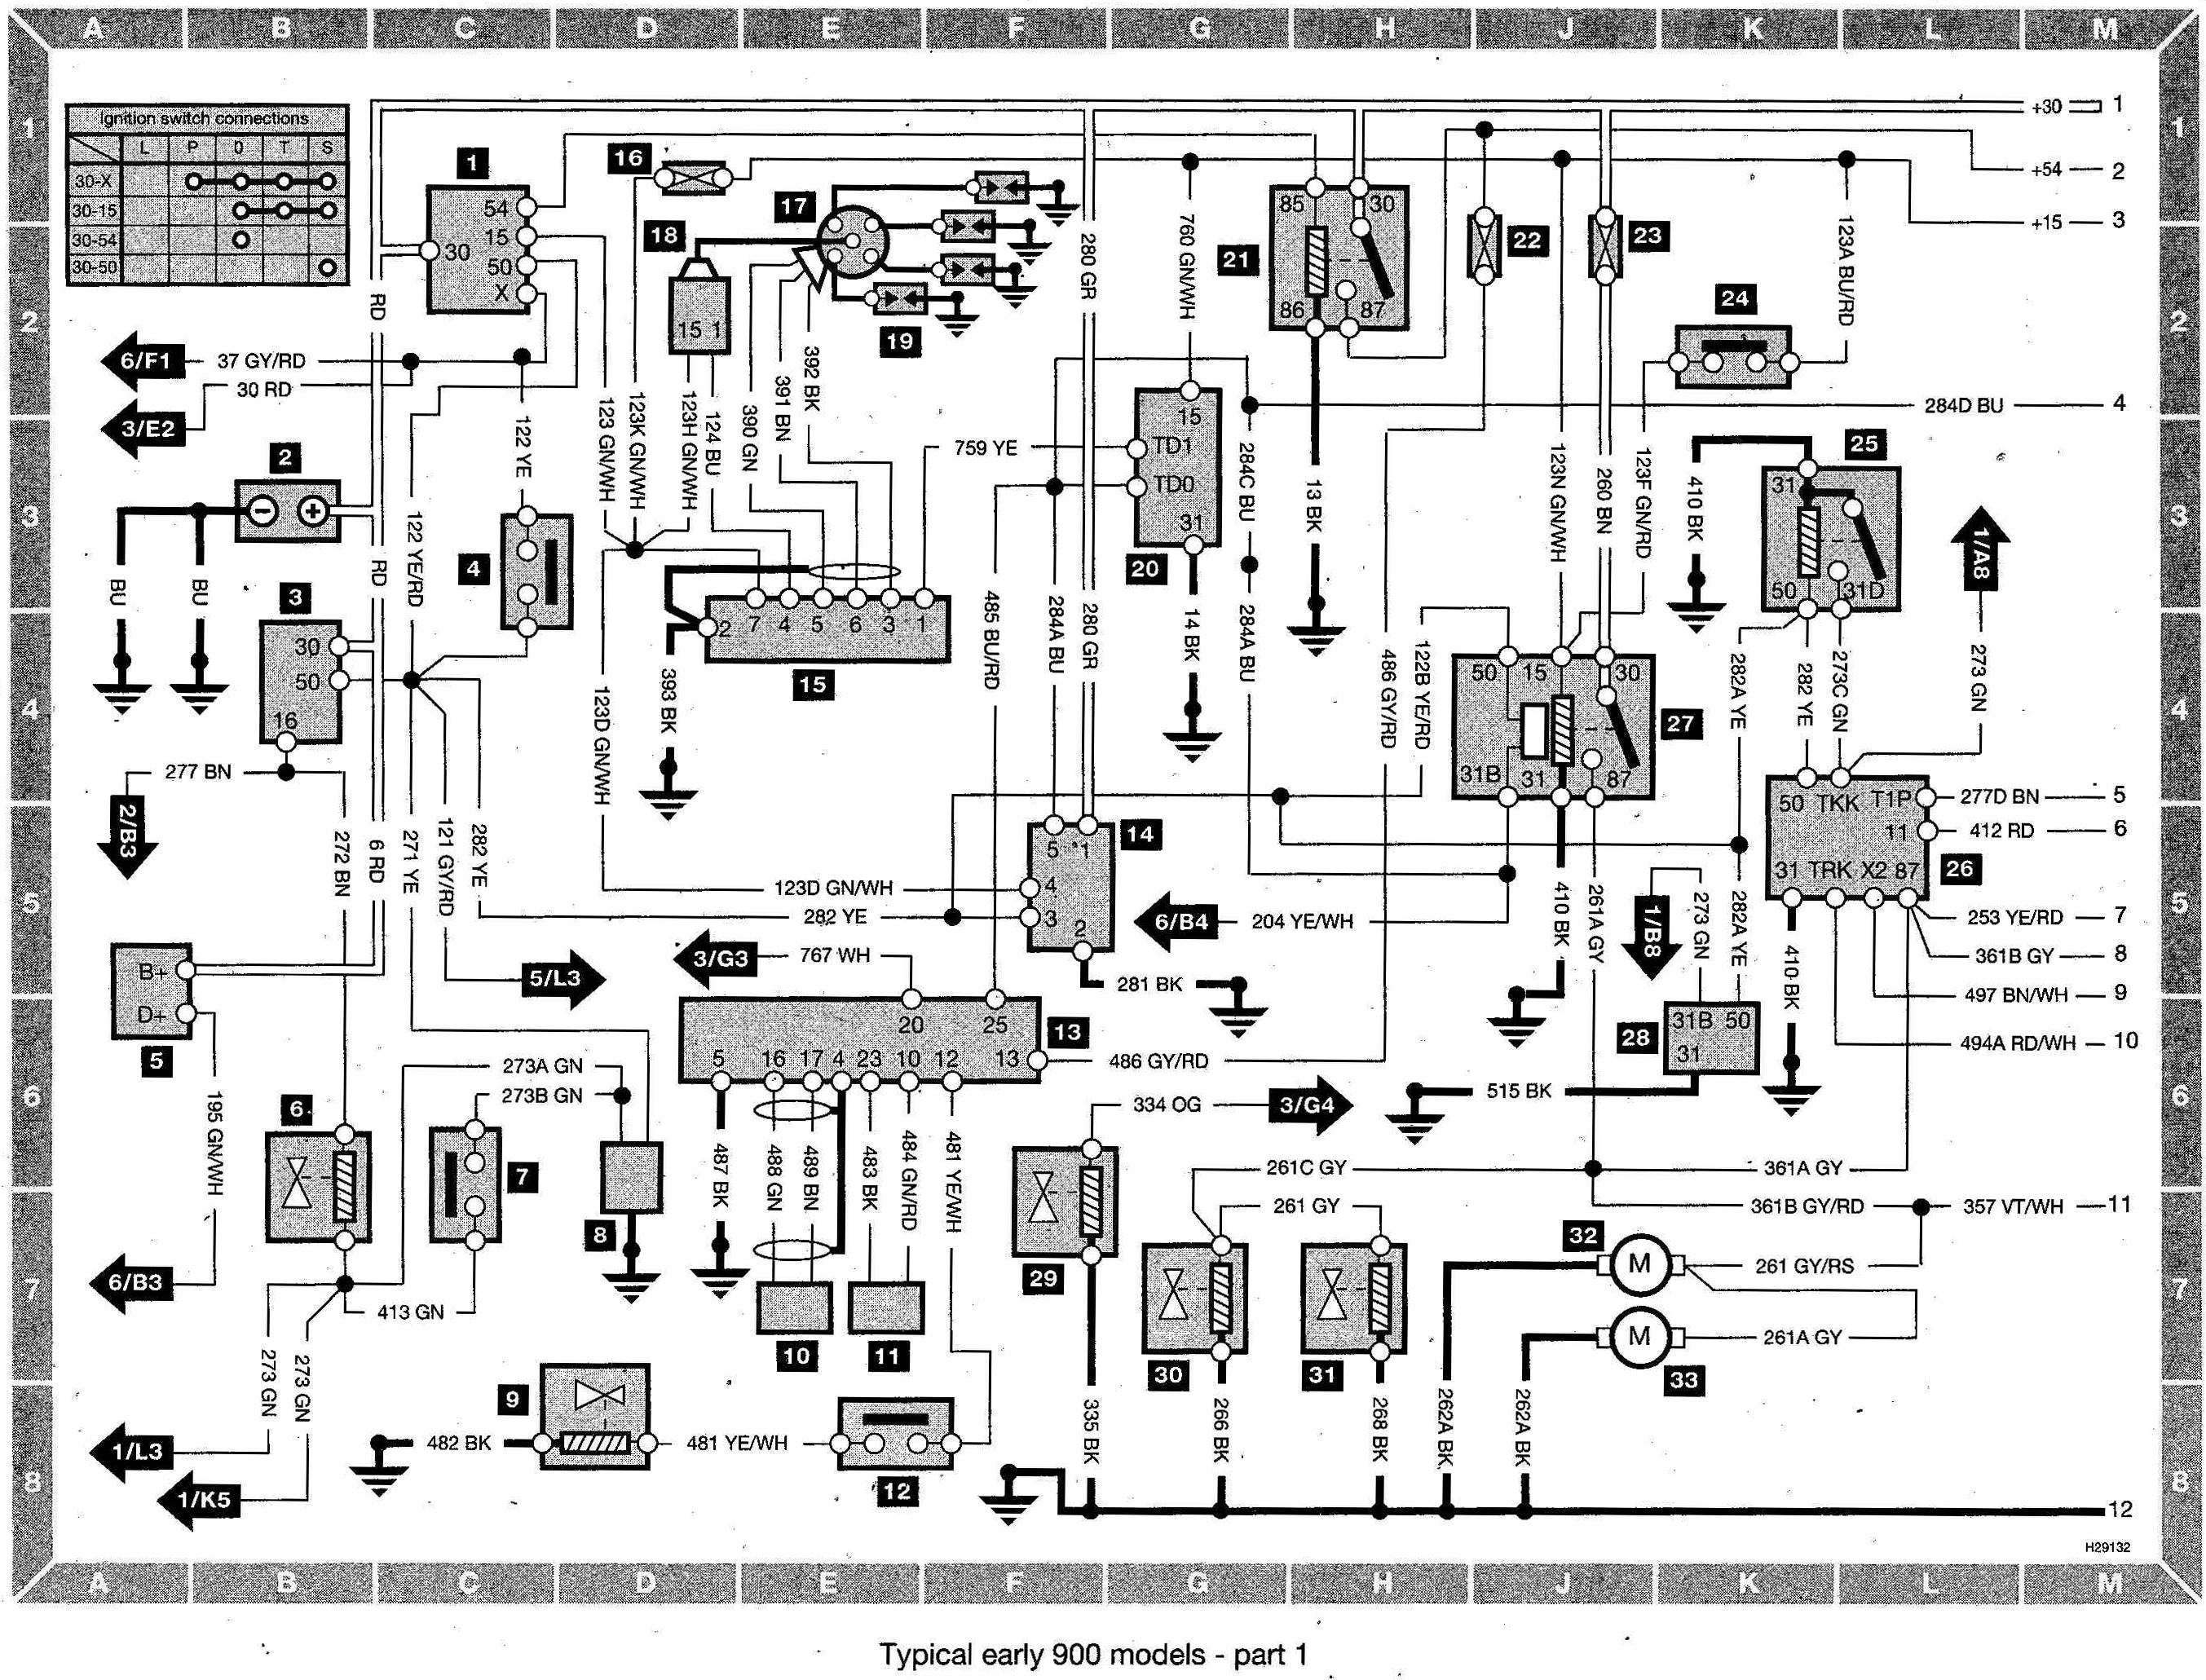 Ford 900 Wiring Diagram - Wiring Diagram Data Oreo - Polaris Ranger Wiring Diagram